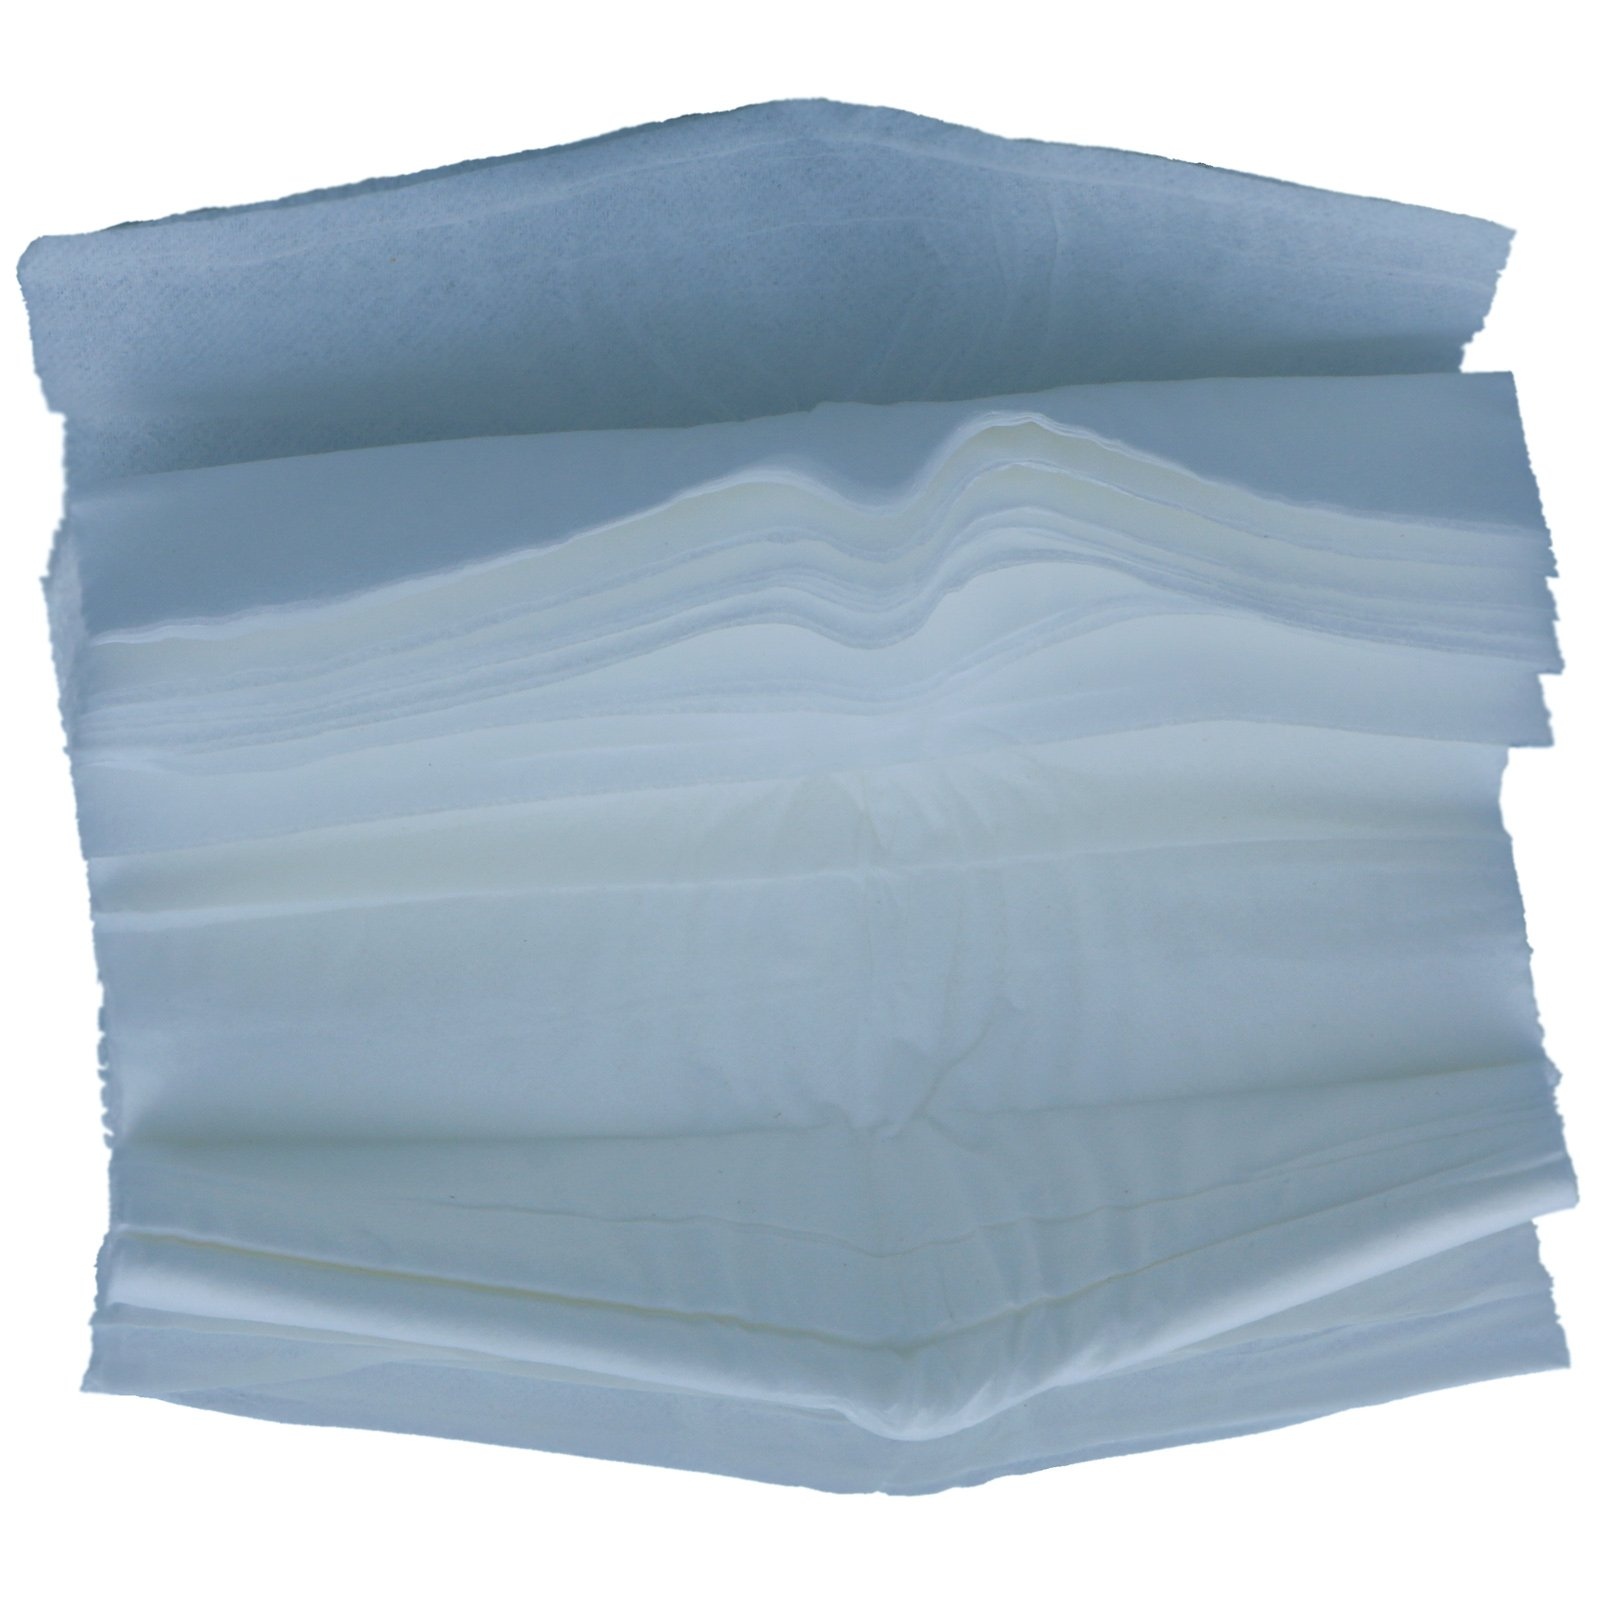 ASR Outdoor Compact Toilet Paper Packet